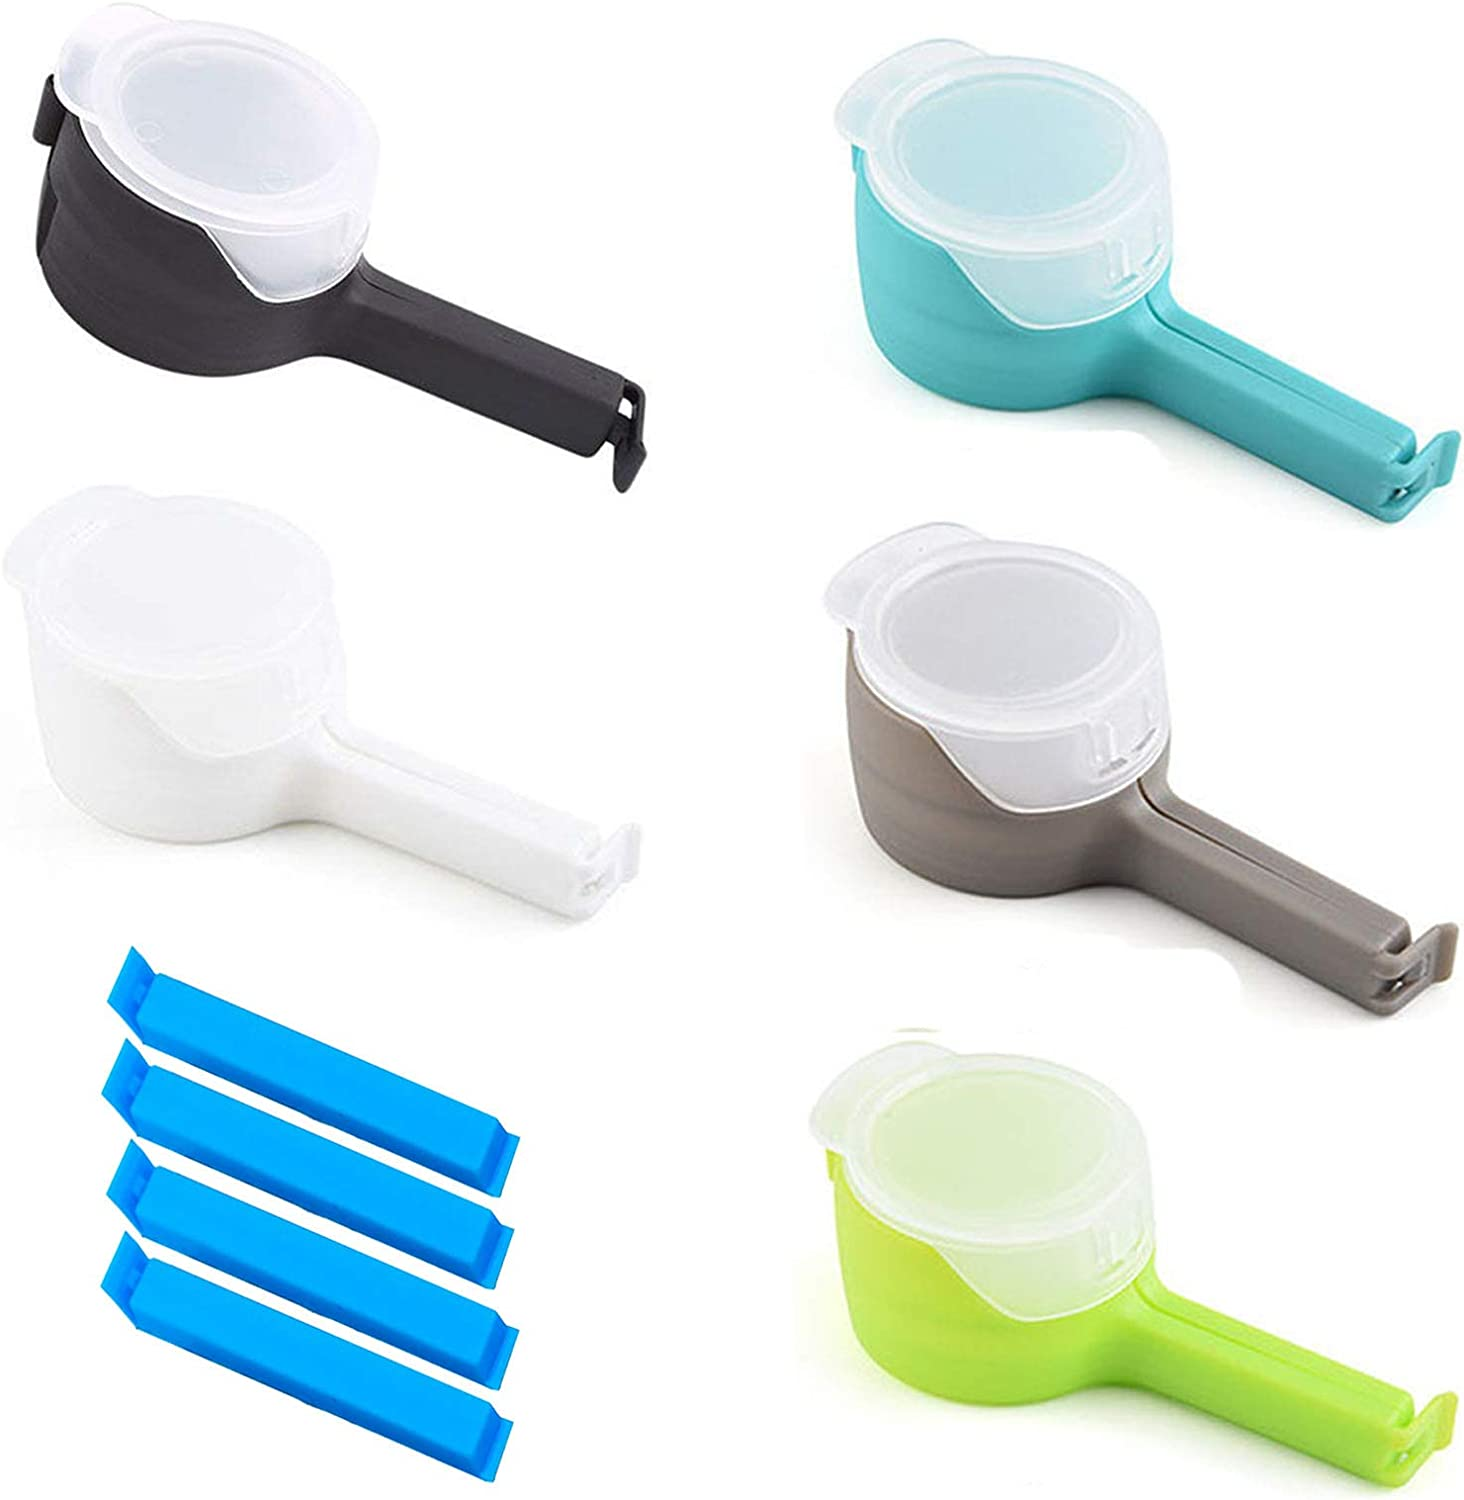 Food Bag Sealing Clips, Bag Clips for Food Storage with Large Discharge Pour Spouts Moisture Sealing Clamp, Snack Food Plastic Cap Sealing Clip